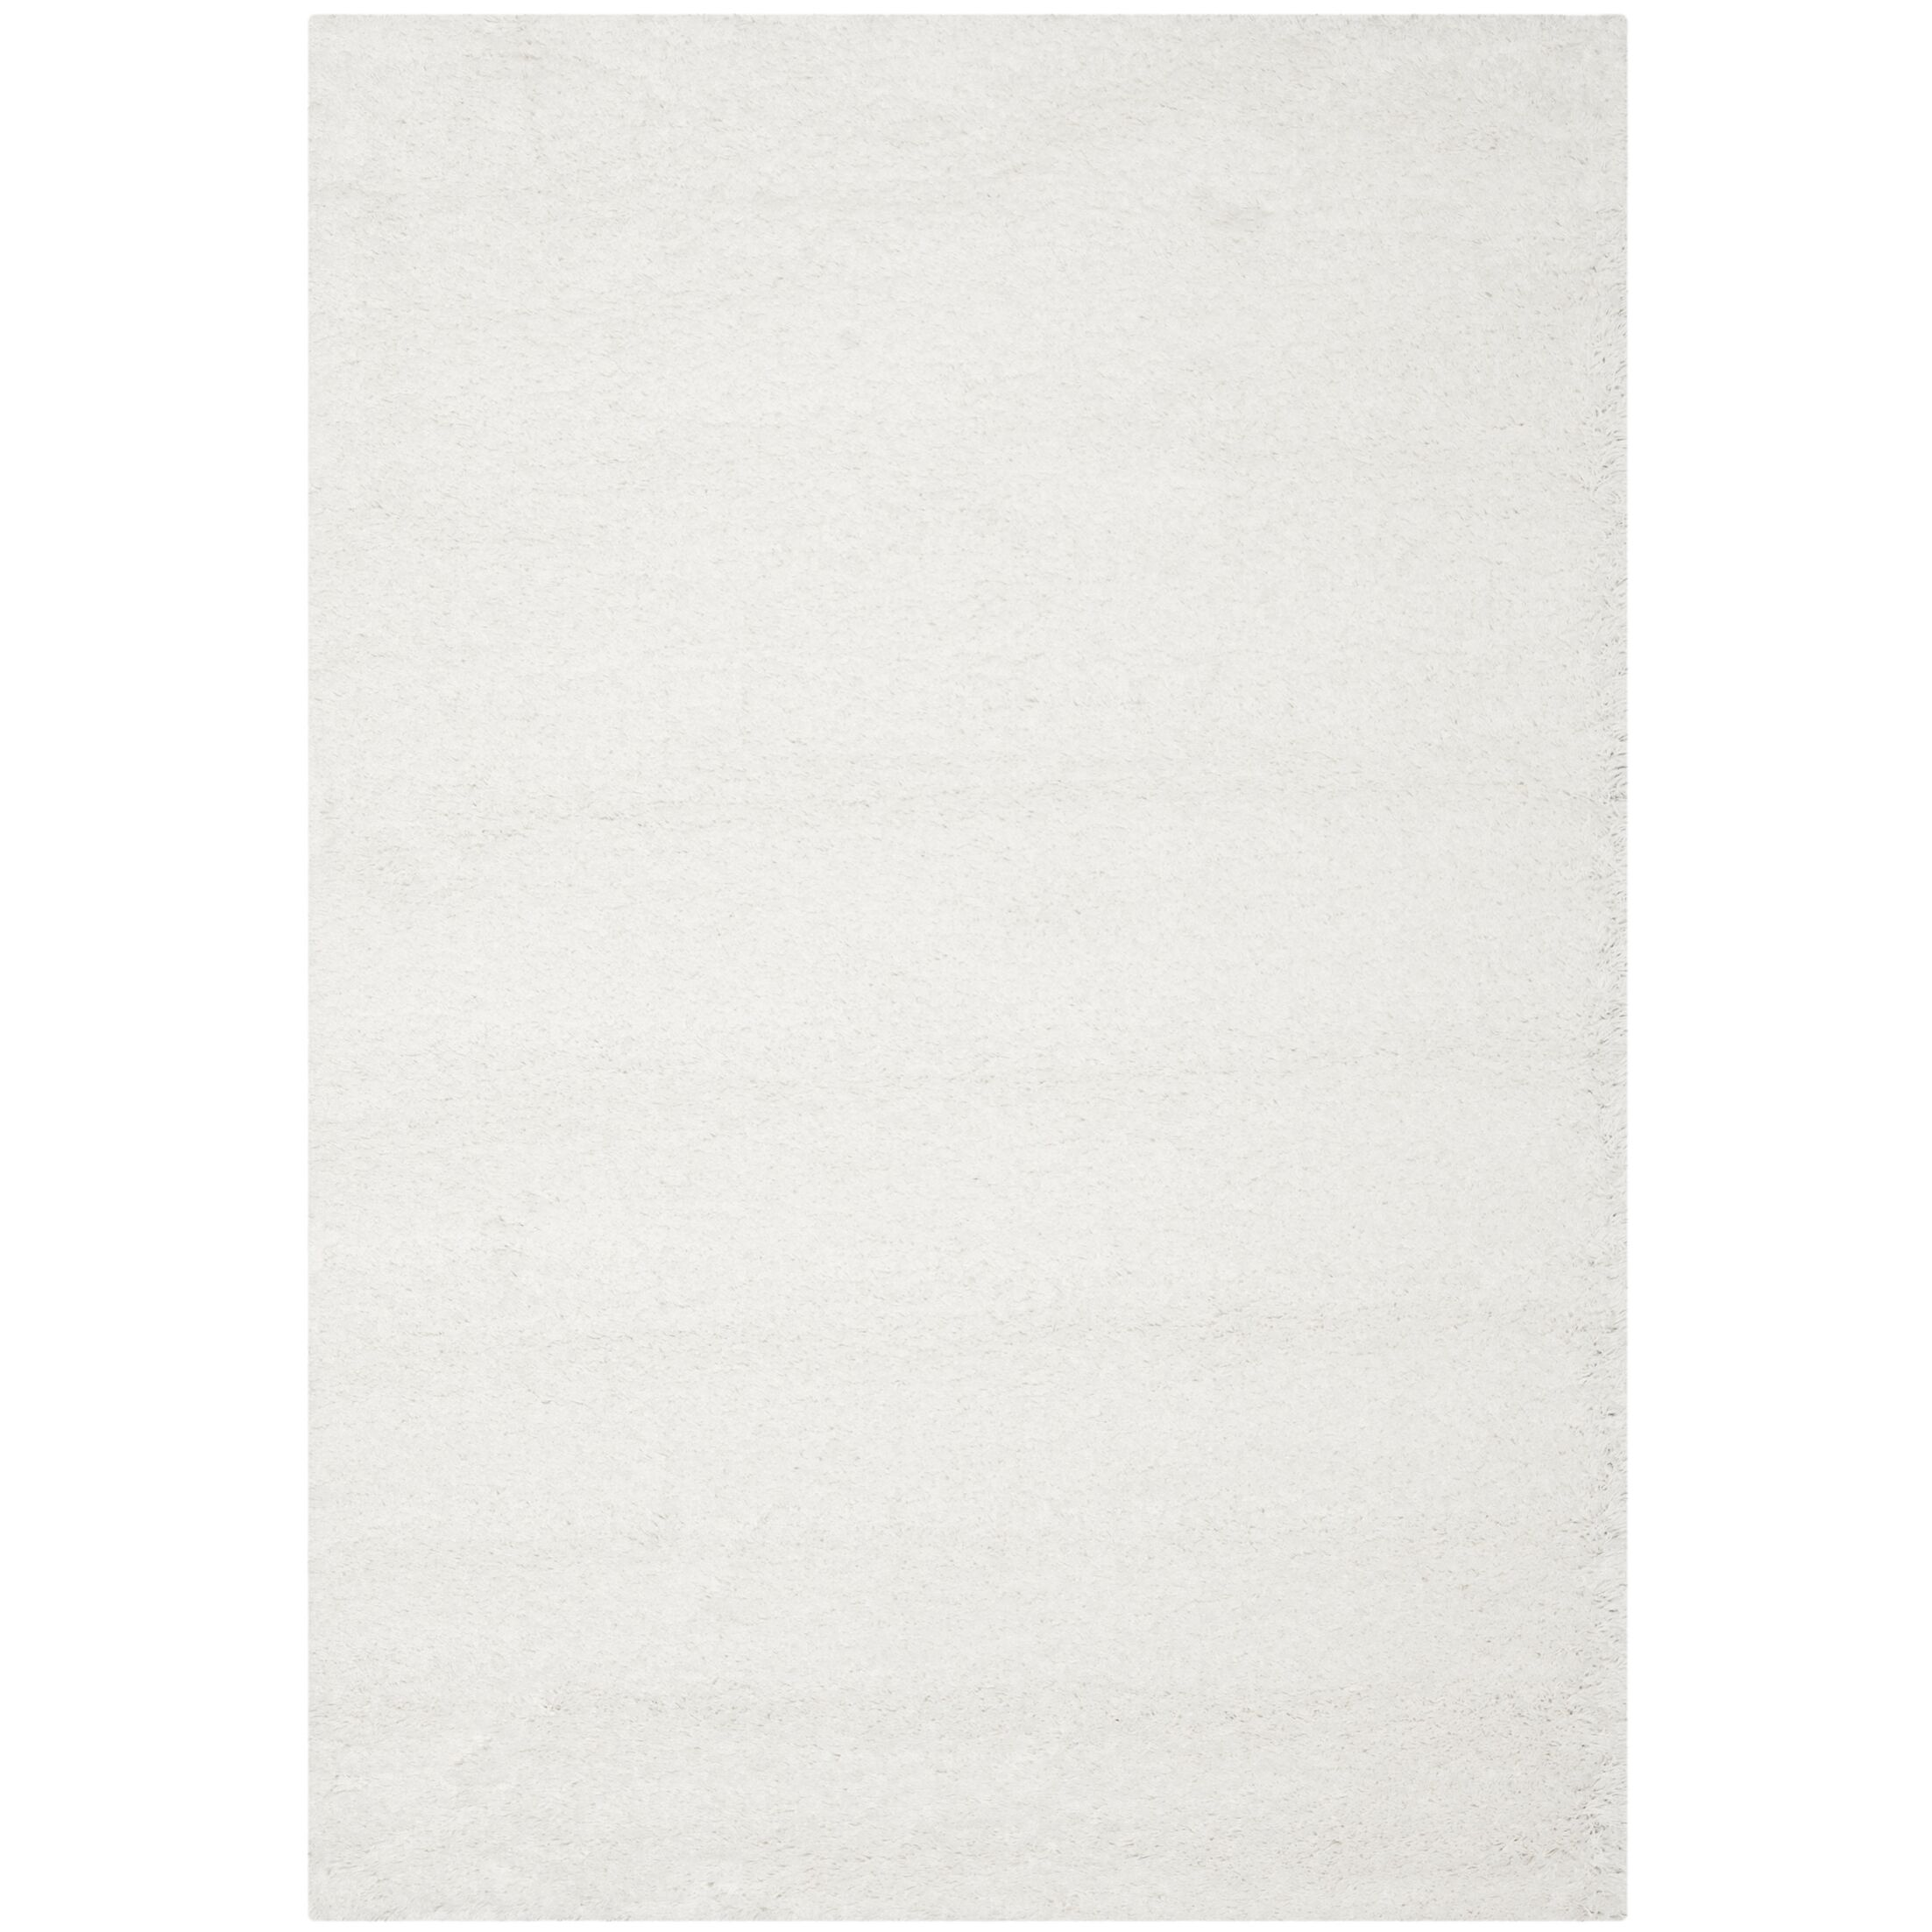 Starr Hill Cream Area Rug Rug Size: Rectangle 8'6